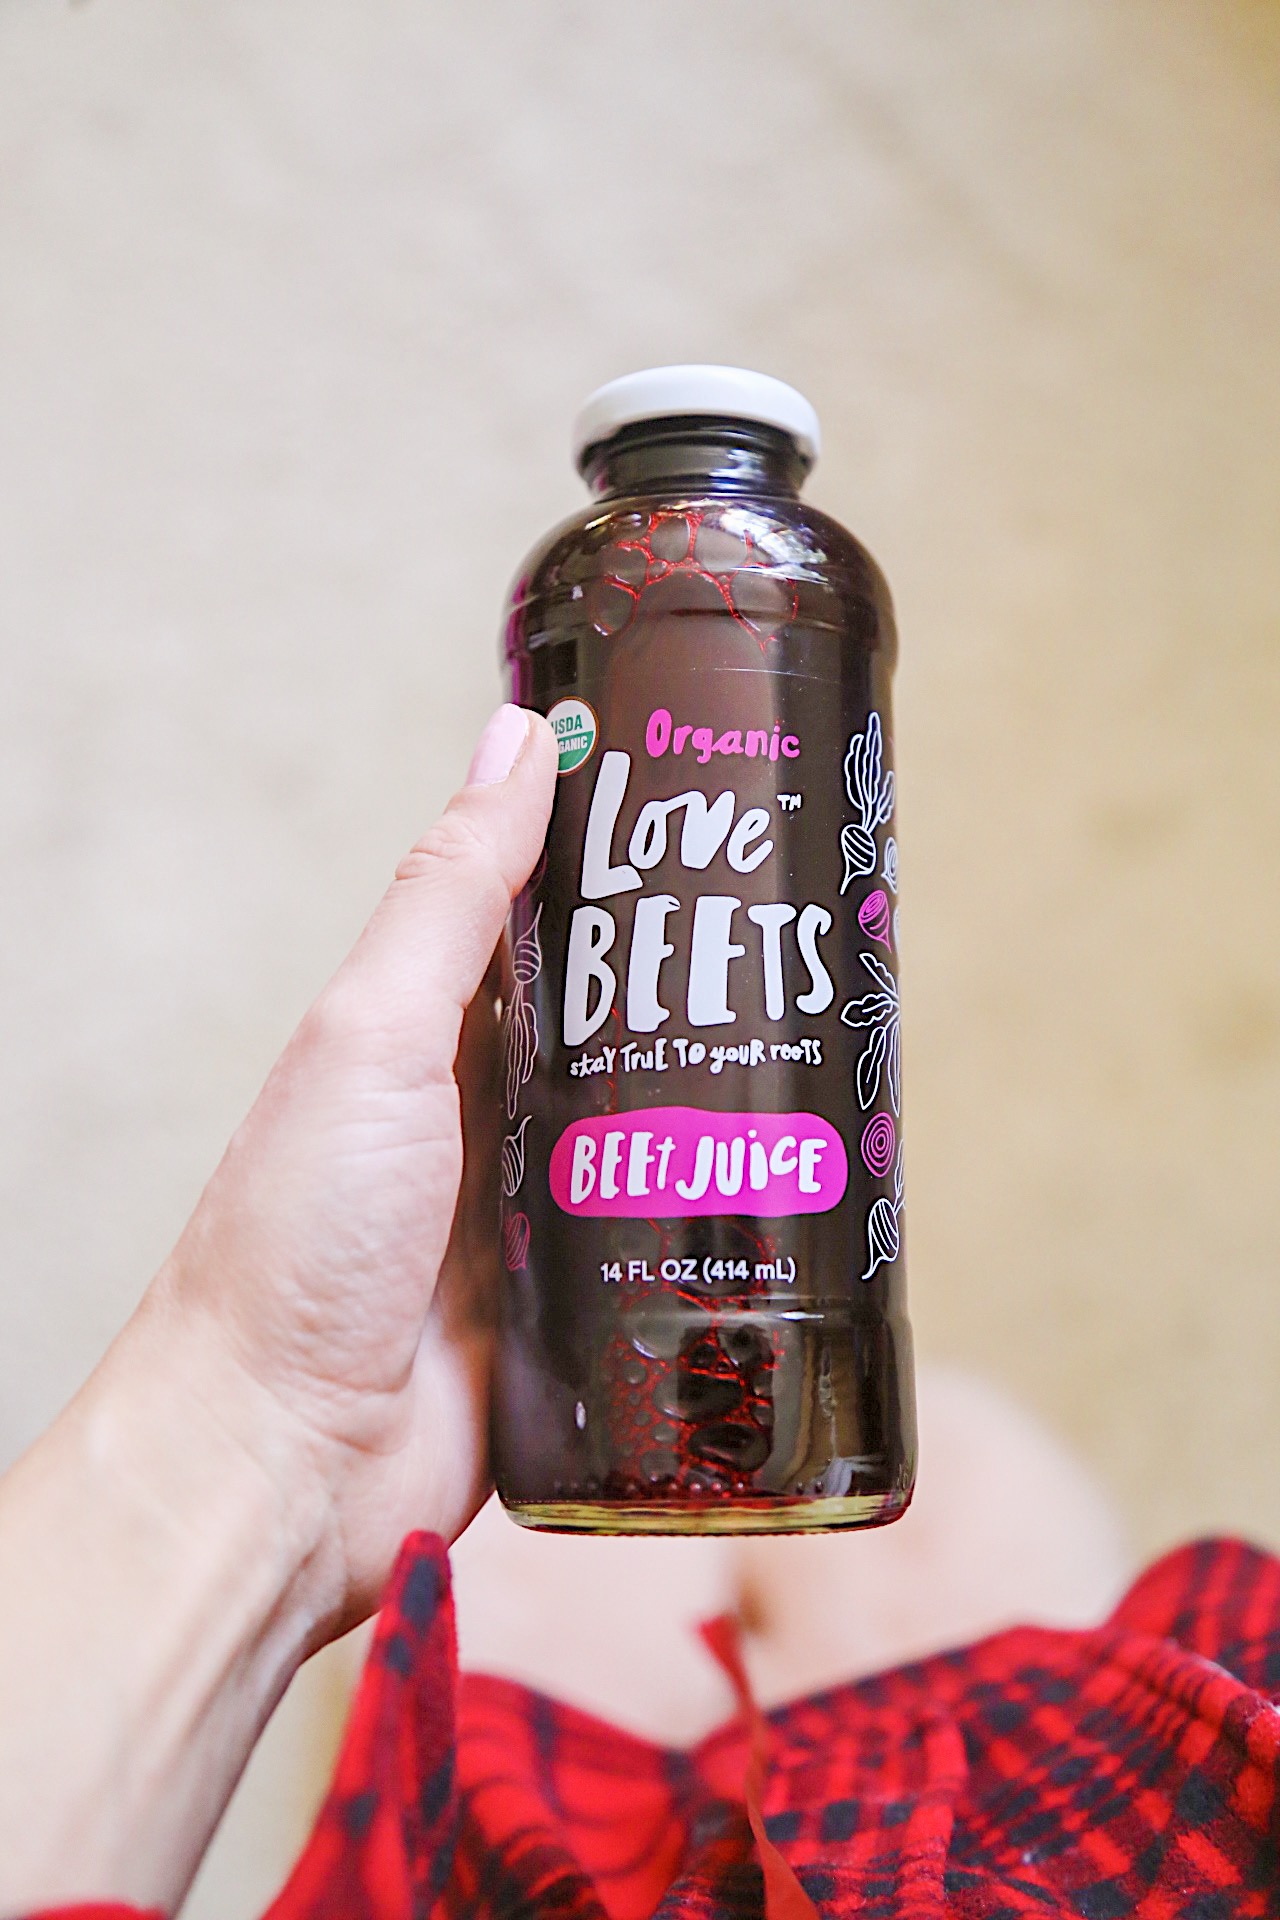 My newest find is this  beet juice , which i have become addicted too. I've always been a bit of a health nut and try to get in my daily nutrients wherever I can. I get  this  from my local Weis Market and drink it every morning. I put the juice in a small glass so that each bottle usually lasts me about three days. The benefits of beet juice are amazing. Check them out  here .